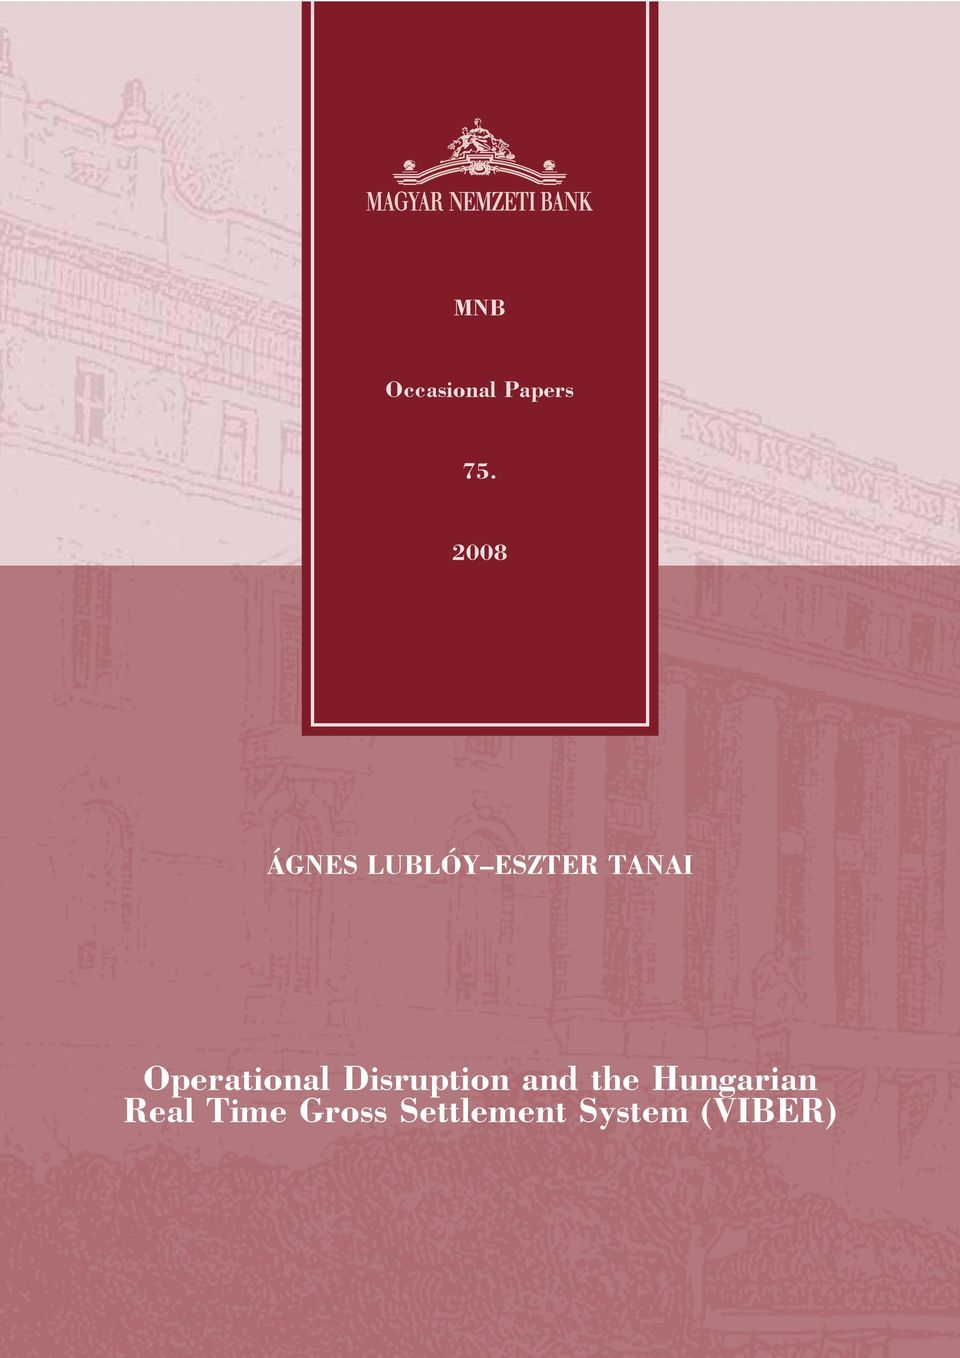 Operational Disruption and the